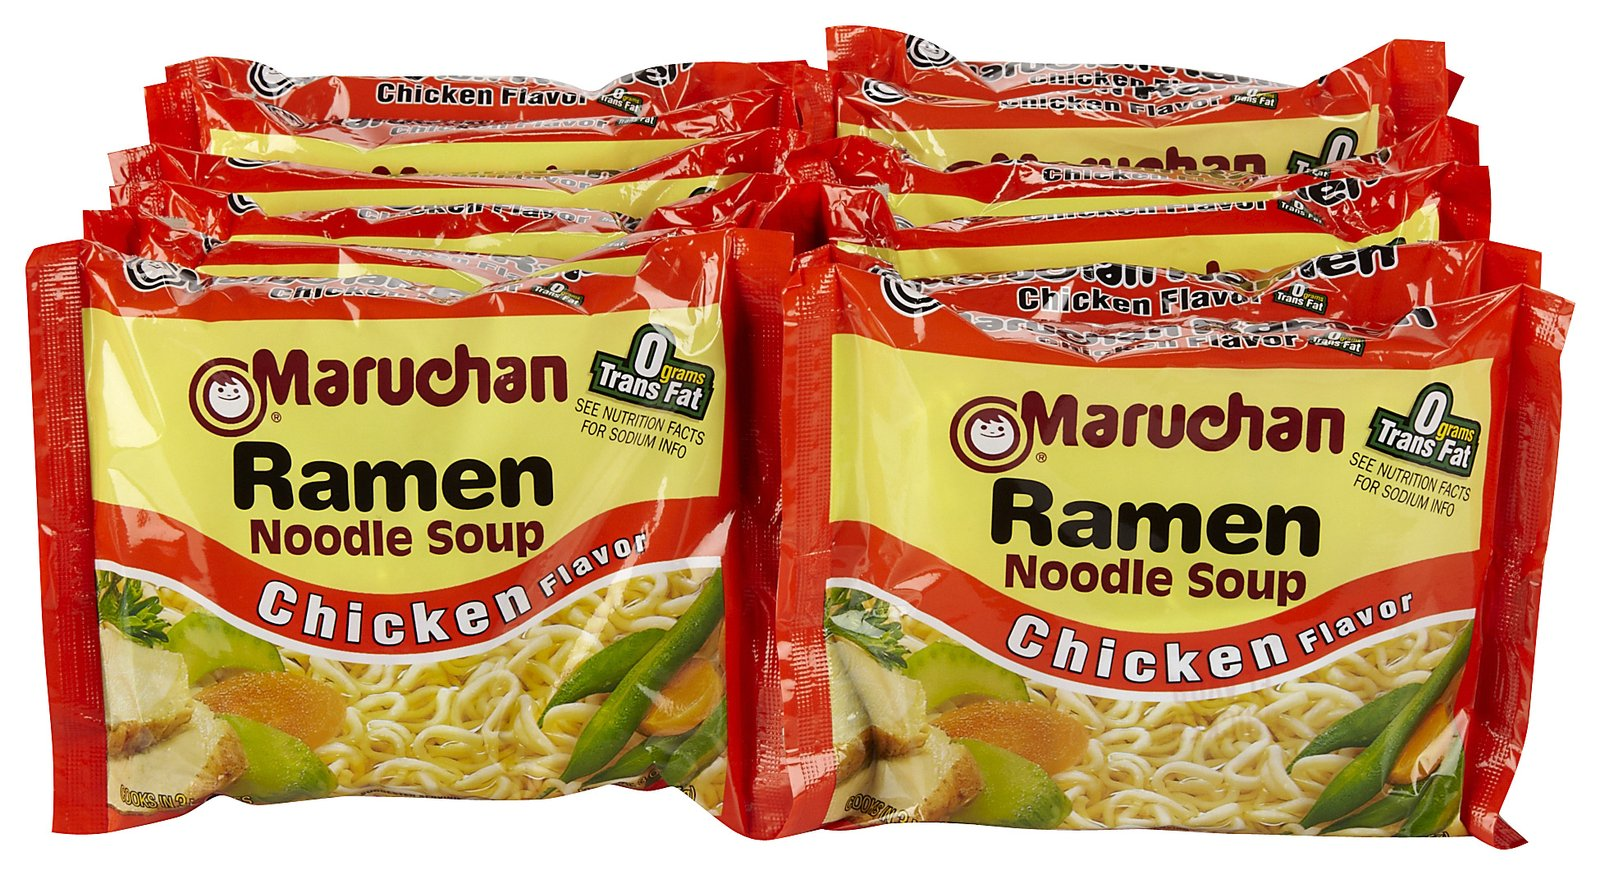 Chicken Hiyashi Chuka Japanese Cold Ramen moreover What Exactly Is Unhealthy About Instant Noodles likewise 1947385 moreover A 14846553 besides 578 Nong Shim Shin Ramyun Black Premium Noodle Soup. on top ramen nutrition